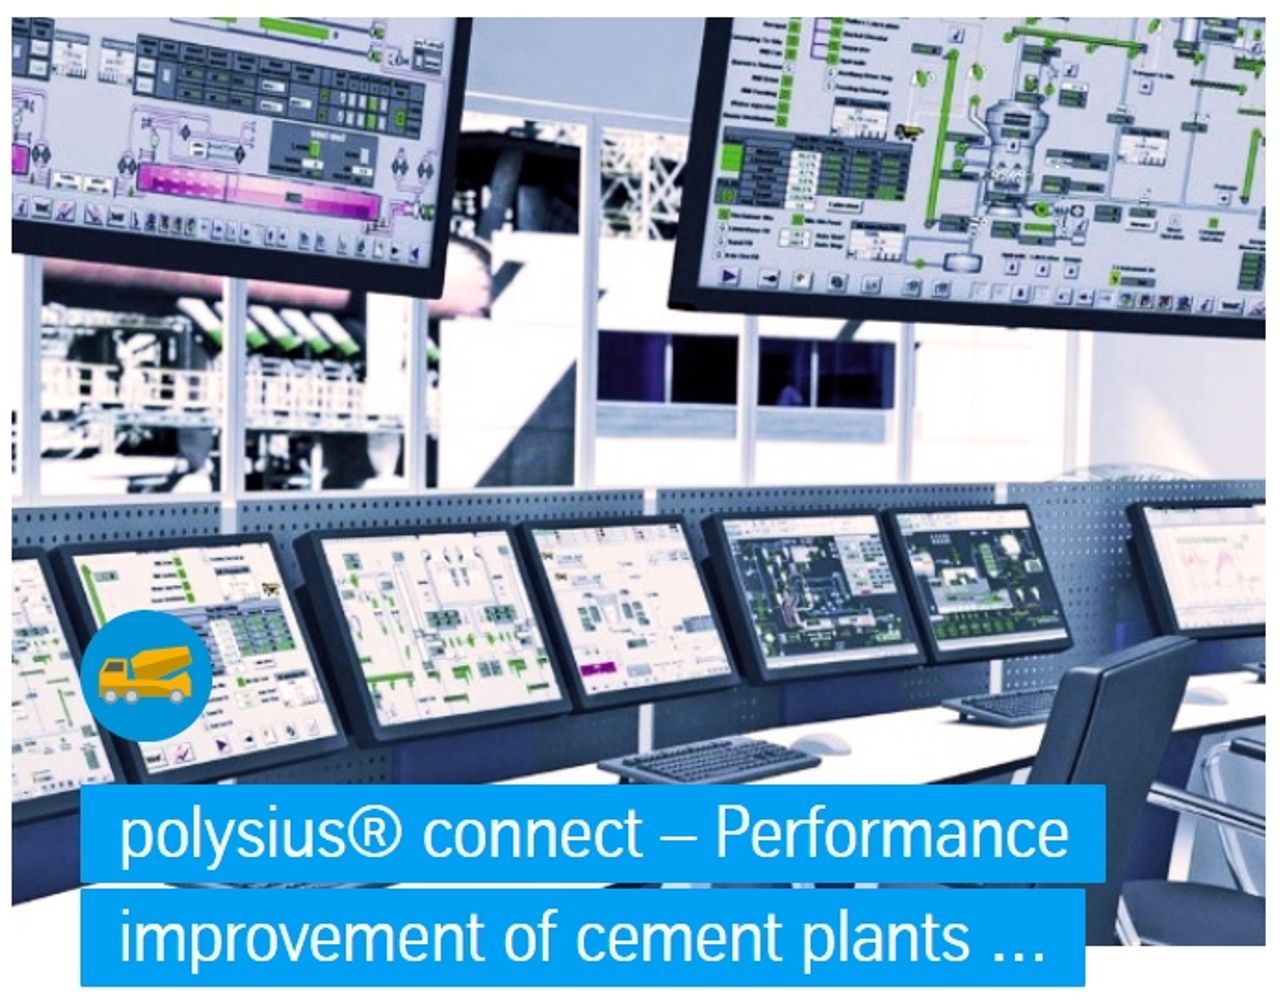 Performance improvement of cement plants thanks to remote control